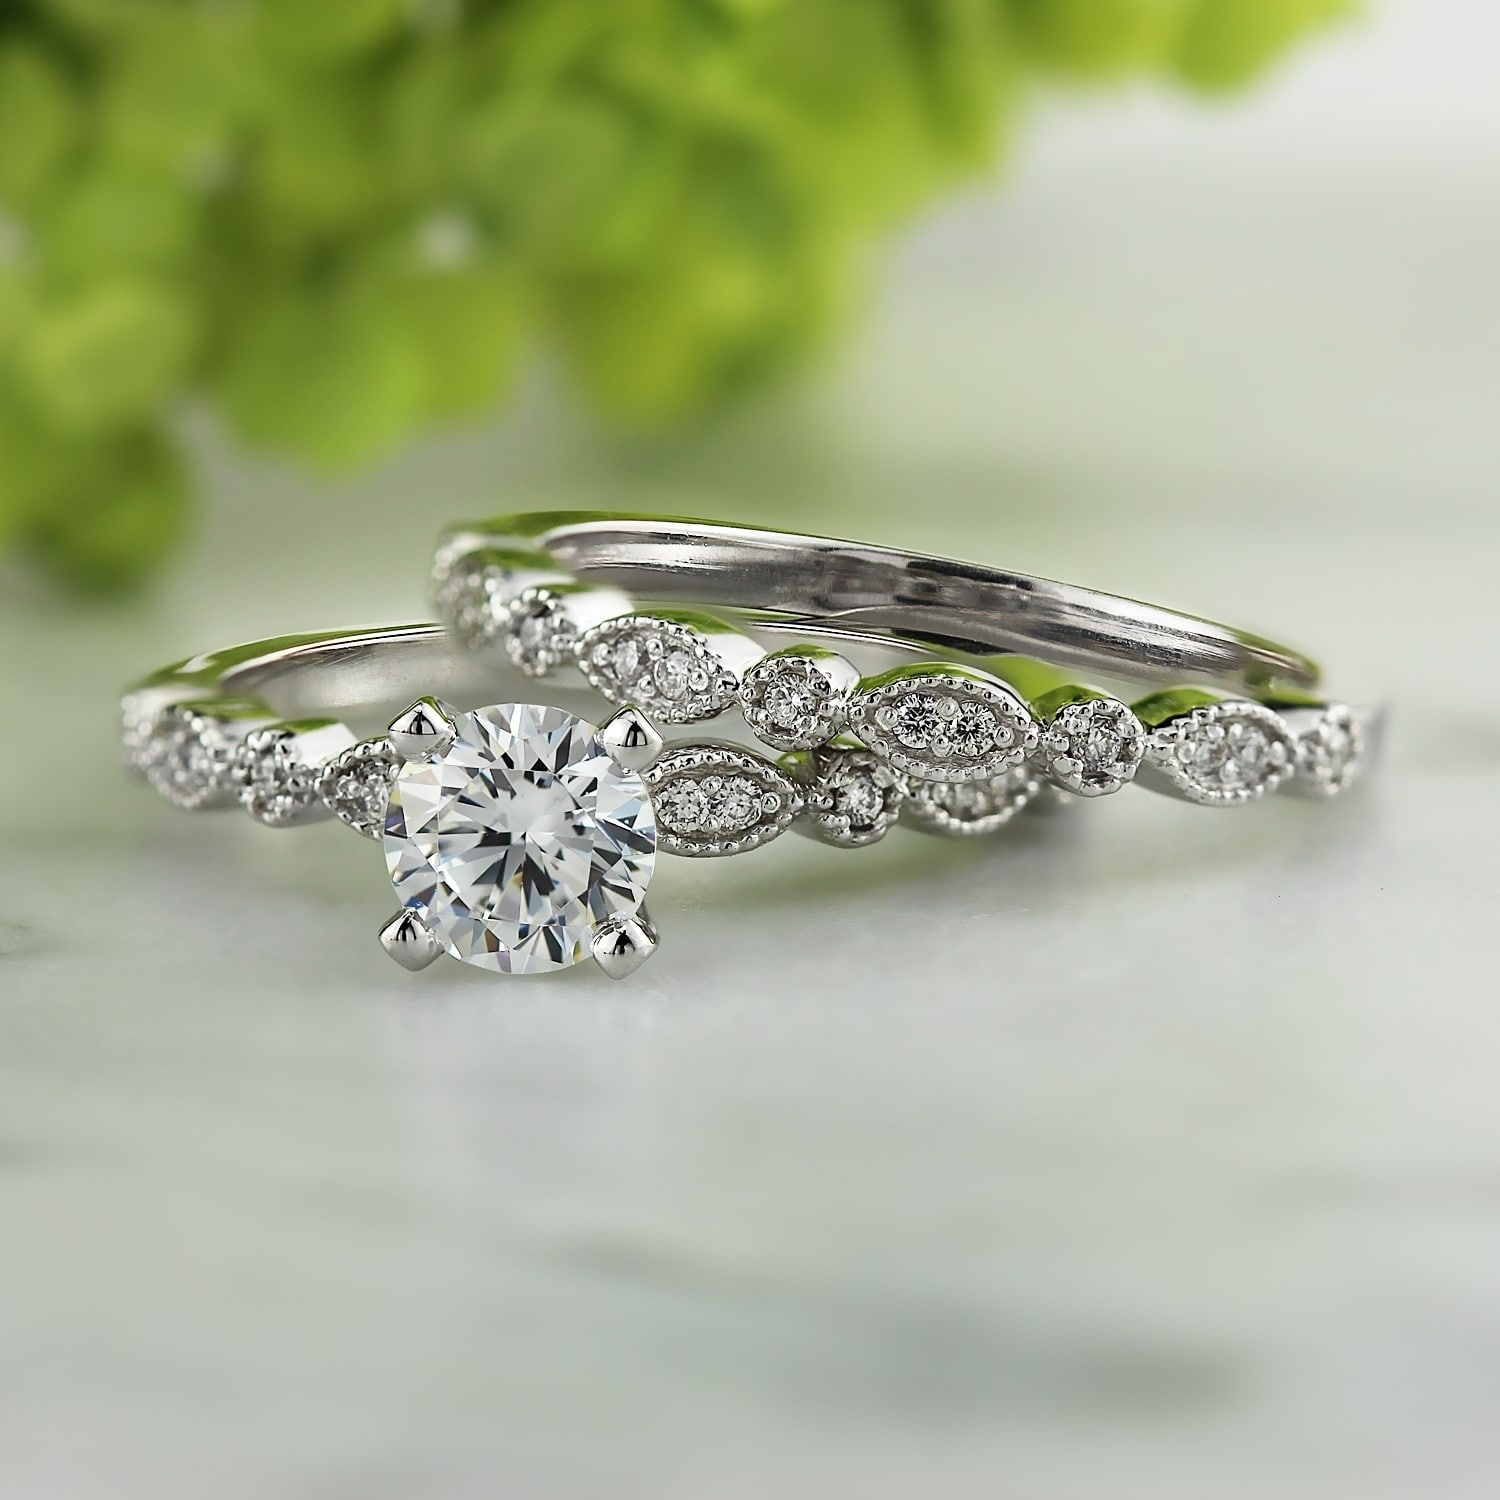 14k Gold Vintage Inspired 4 5ct Tdw Diamond Engagement Ring Set By Auriya On Free Shipping Today 10273289